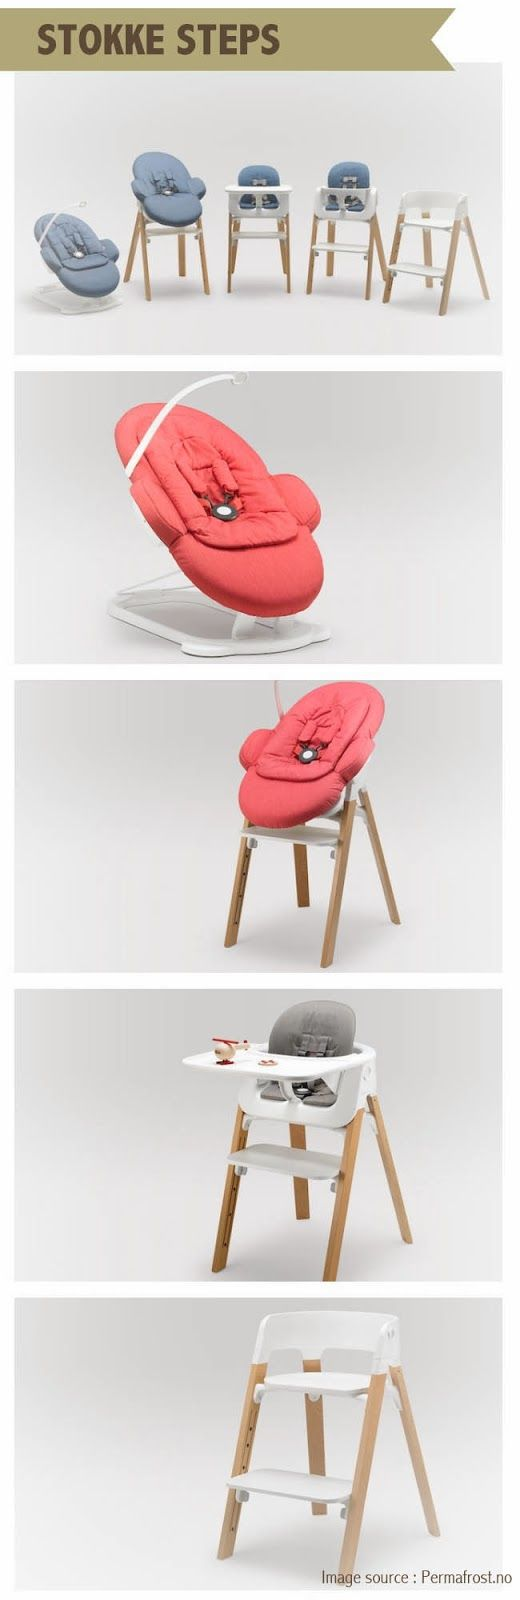 Stokke Steps Chair – The innovative chair that grows with your baby from newborn to ten years of age Liapela.com